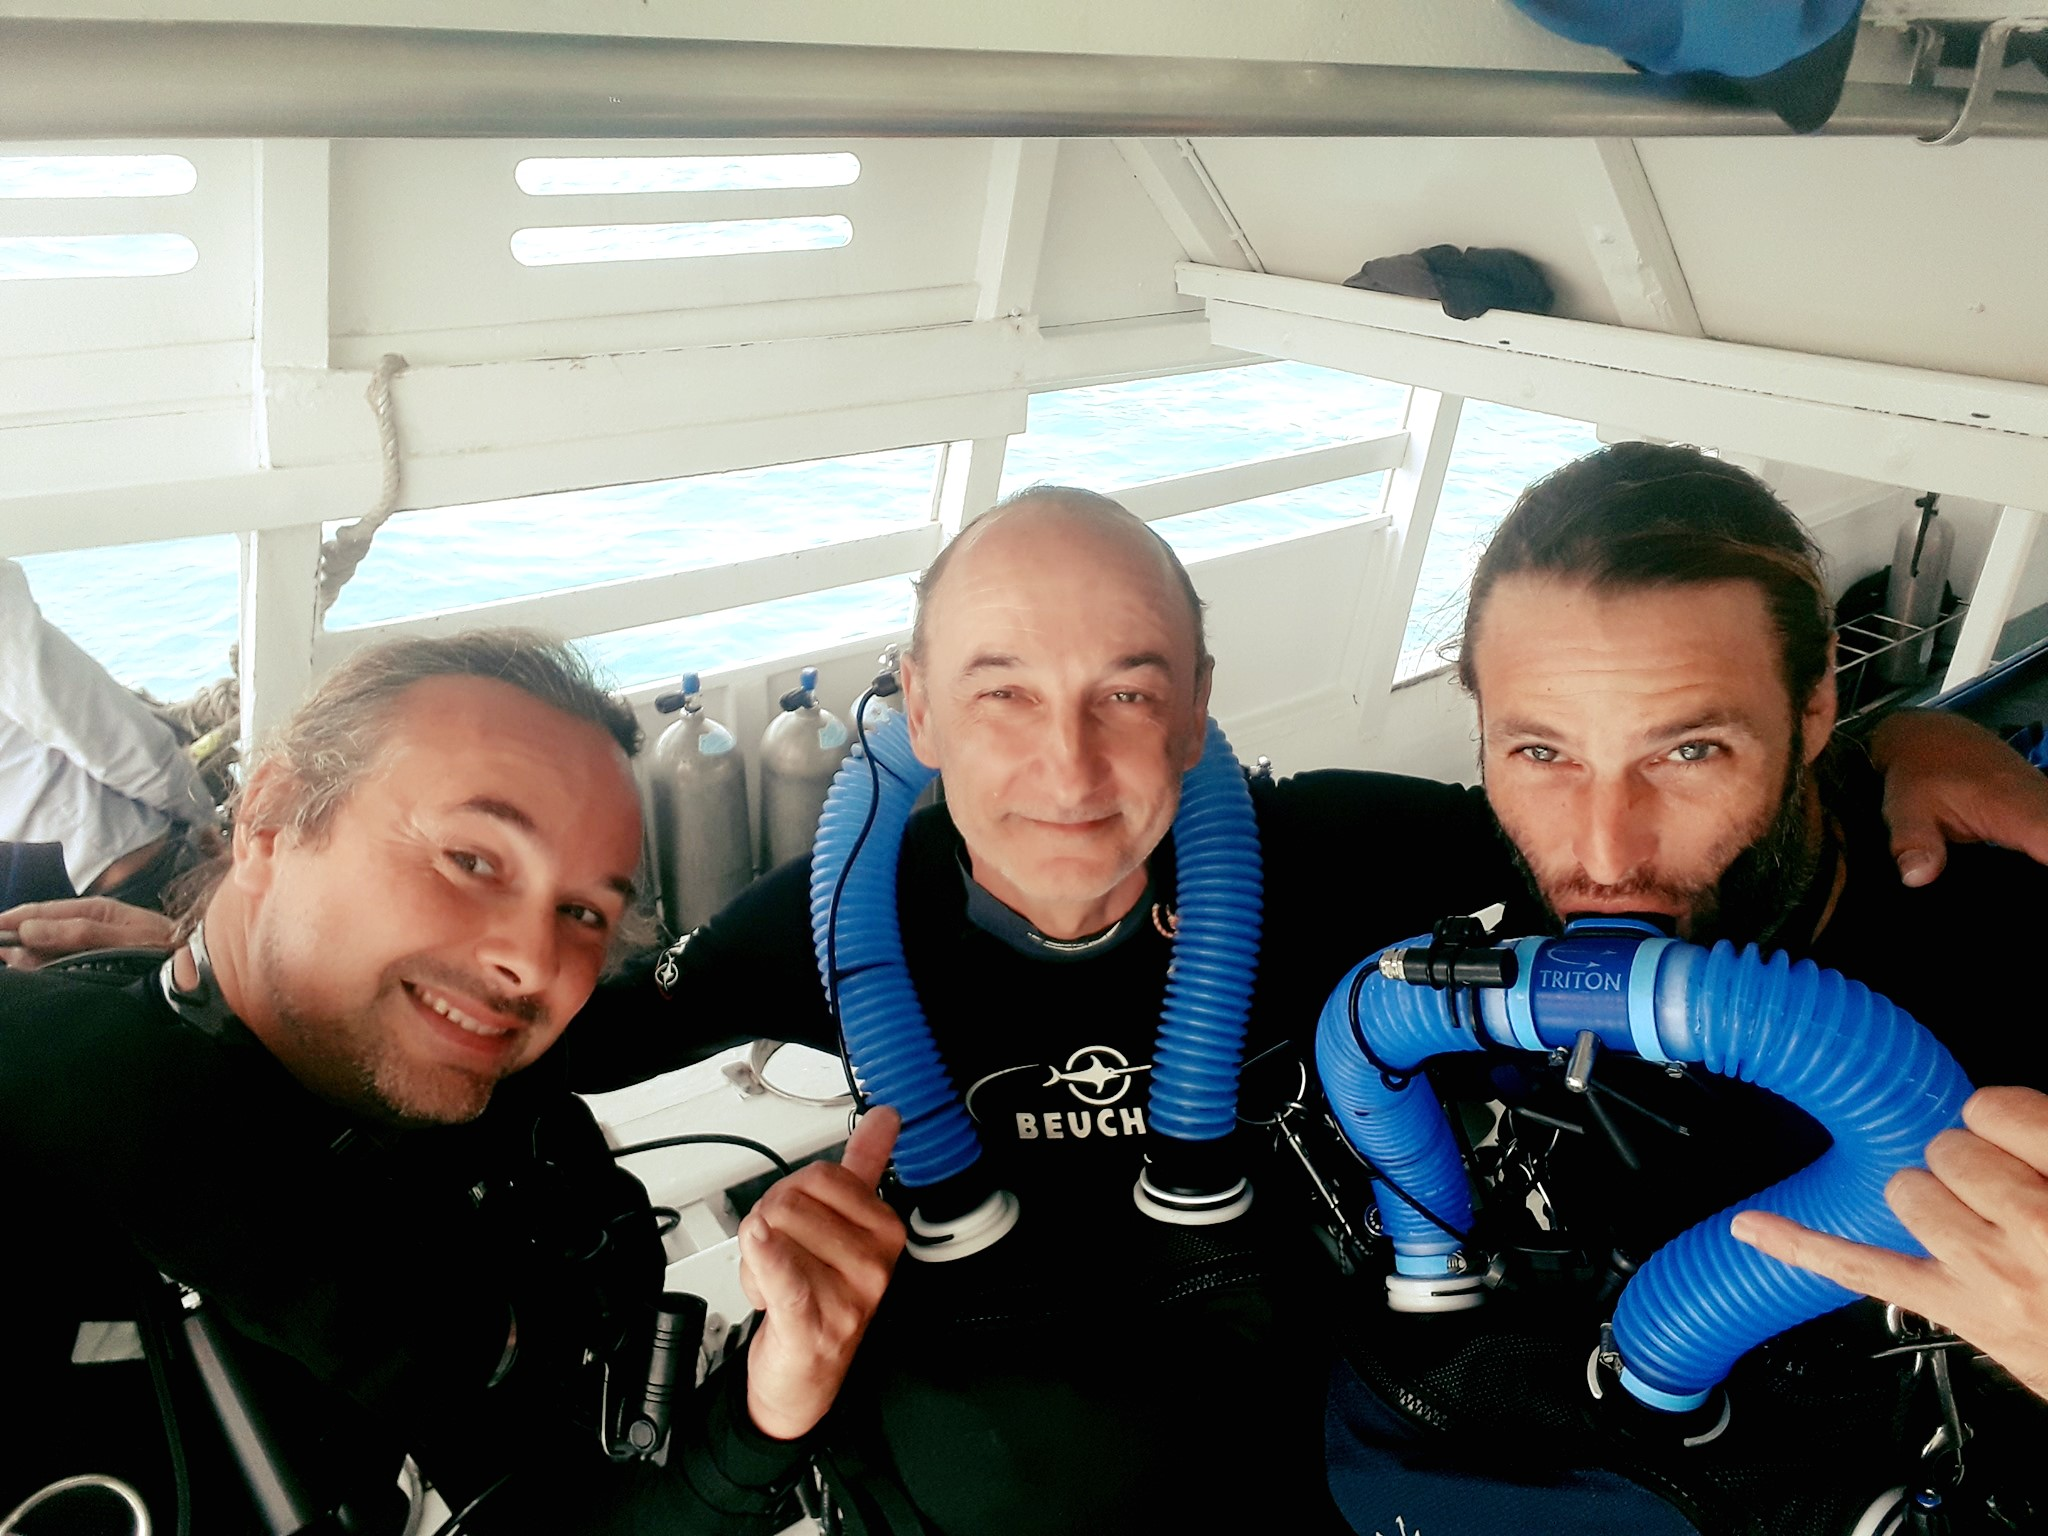 IANTD Christian Heylen, Serge Galin et Yann Poiré on the boat near Sail Rock for the Triton CCR course